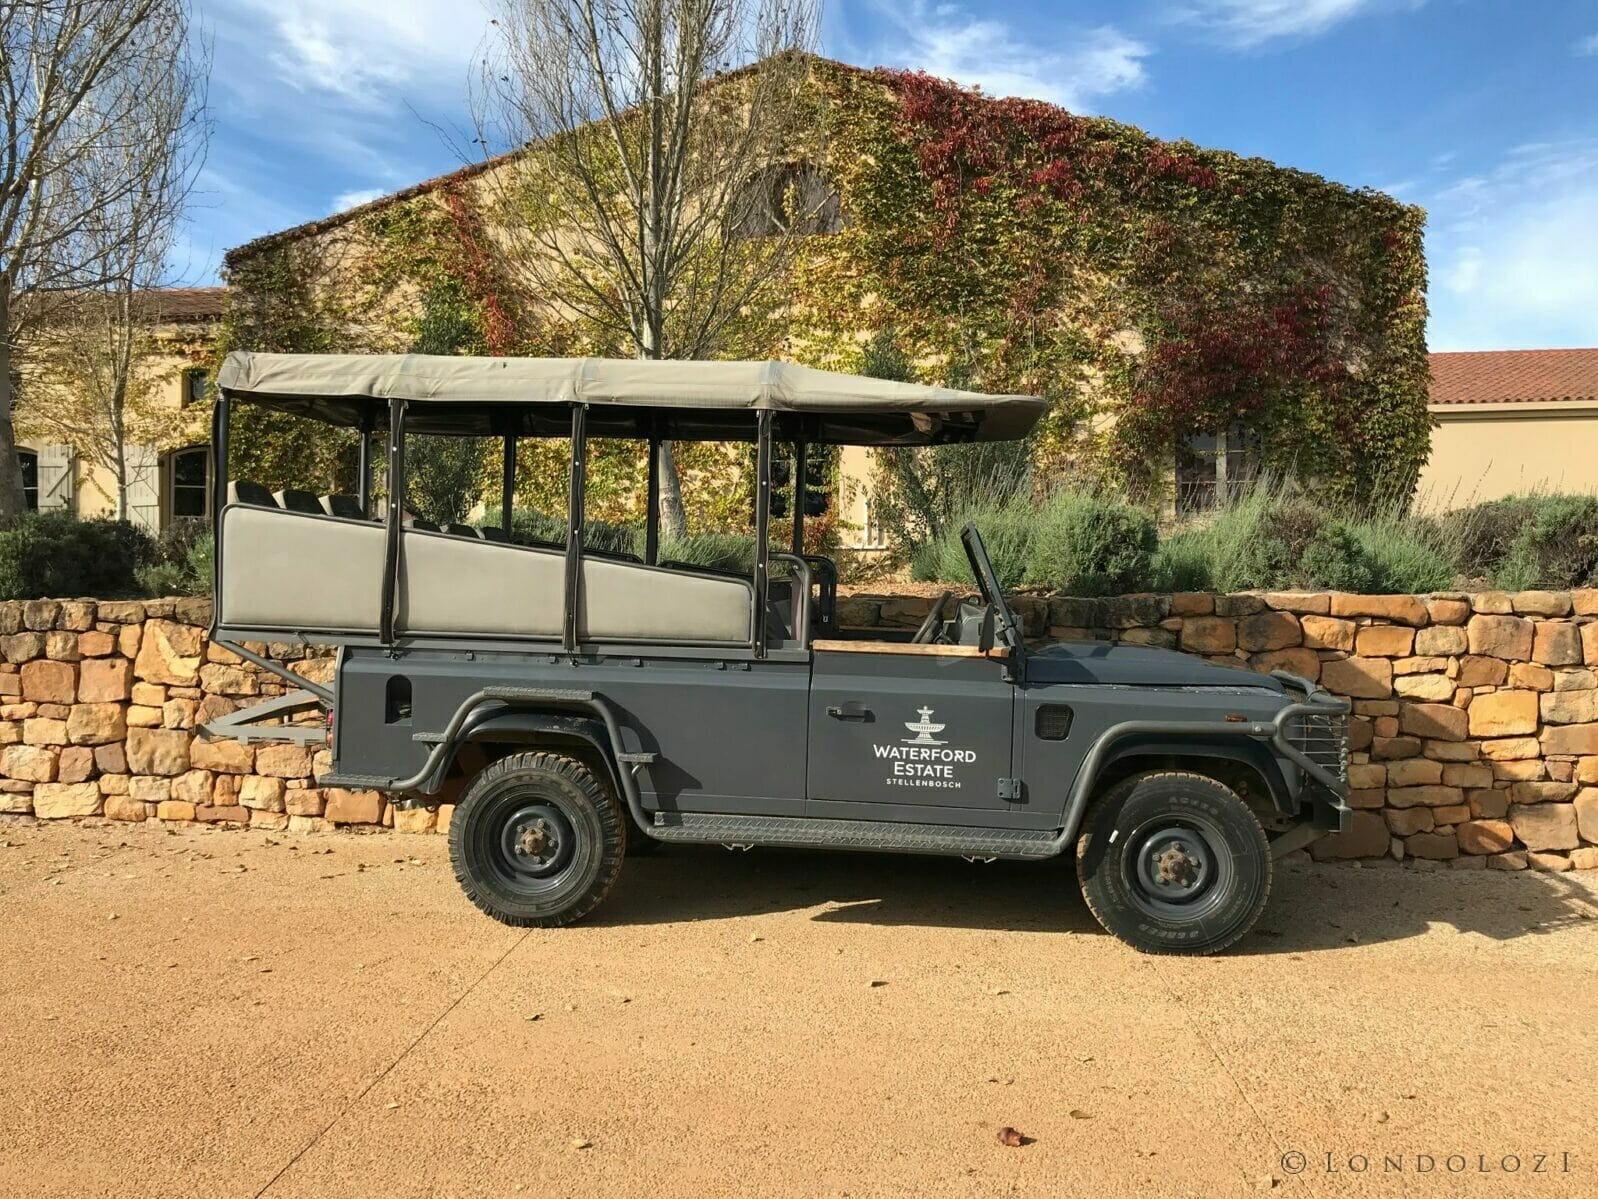 Land Rover used for wine drives at Waterford, from Londolozi to the winelands, the only way to explore nature.